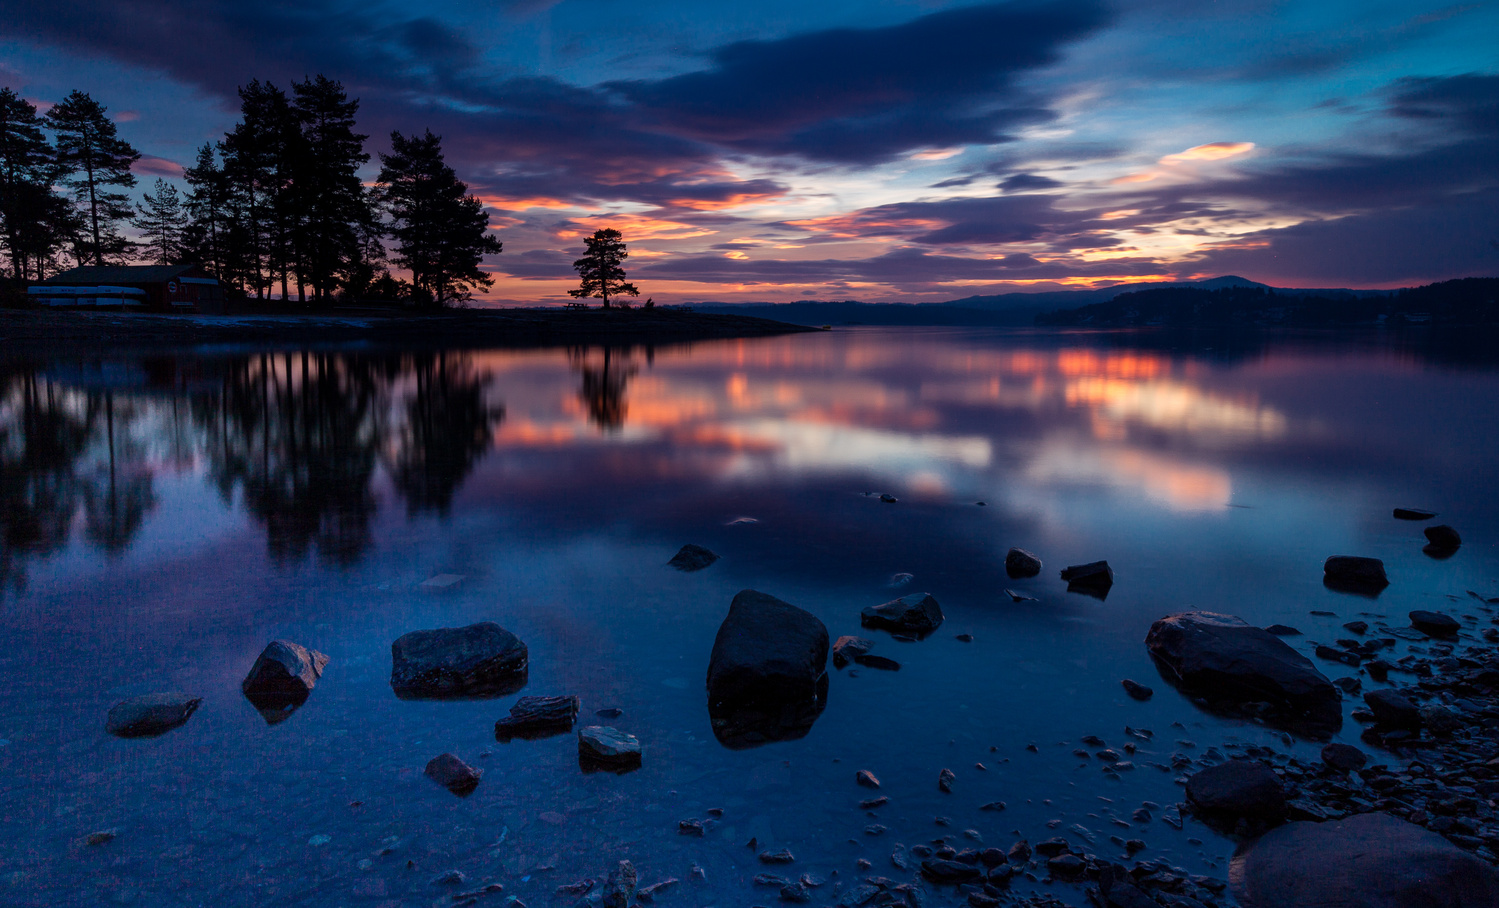 After Sunset XXIII by Leif Hegdal